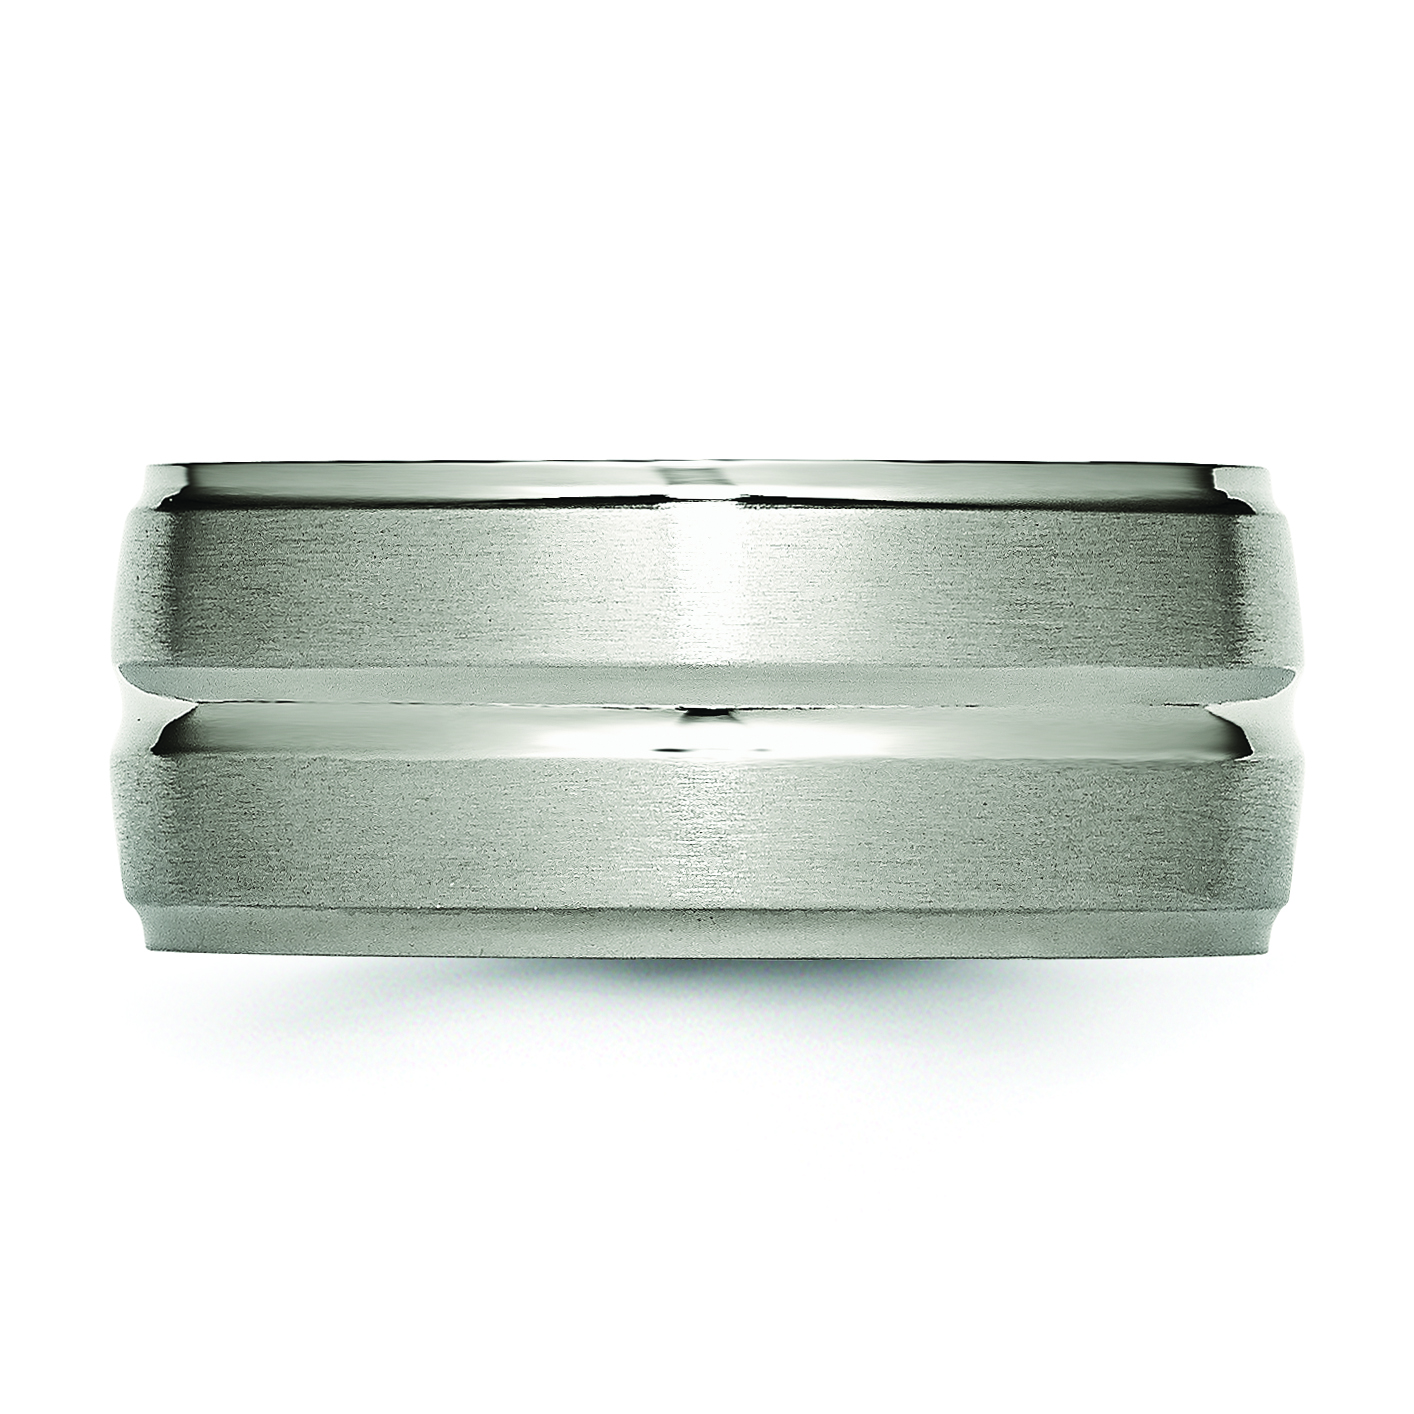 Titanium Grooved Ridged Edge 10mm Brushed and Polished Band Size 14 - image 2 de 3